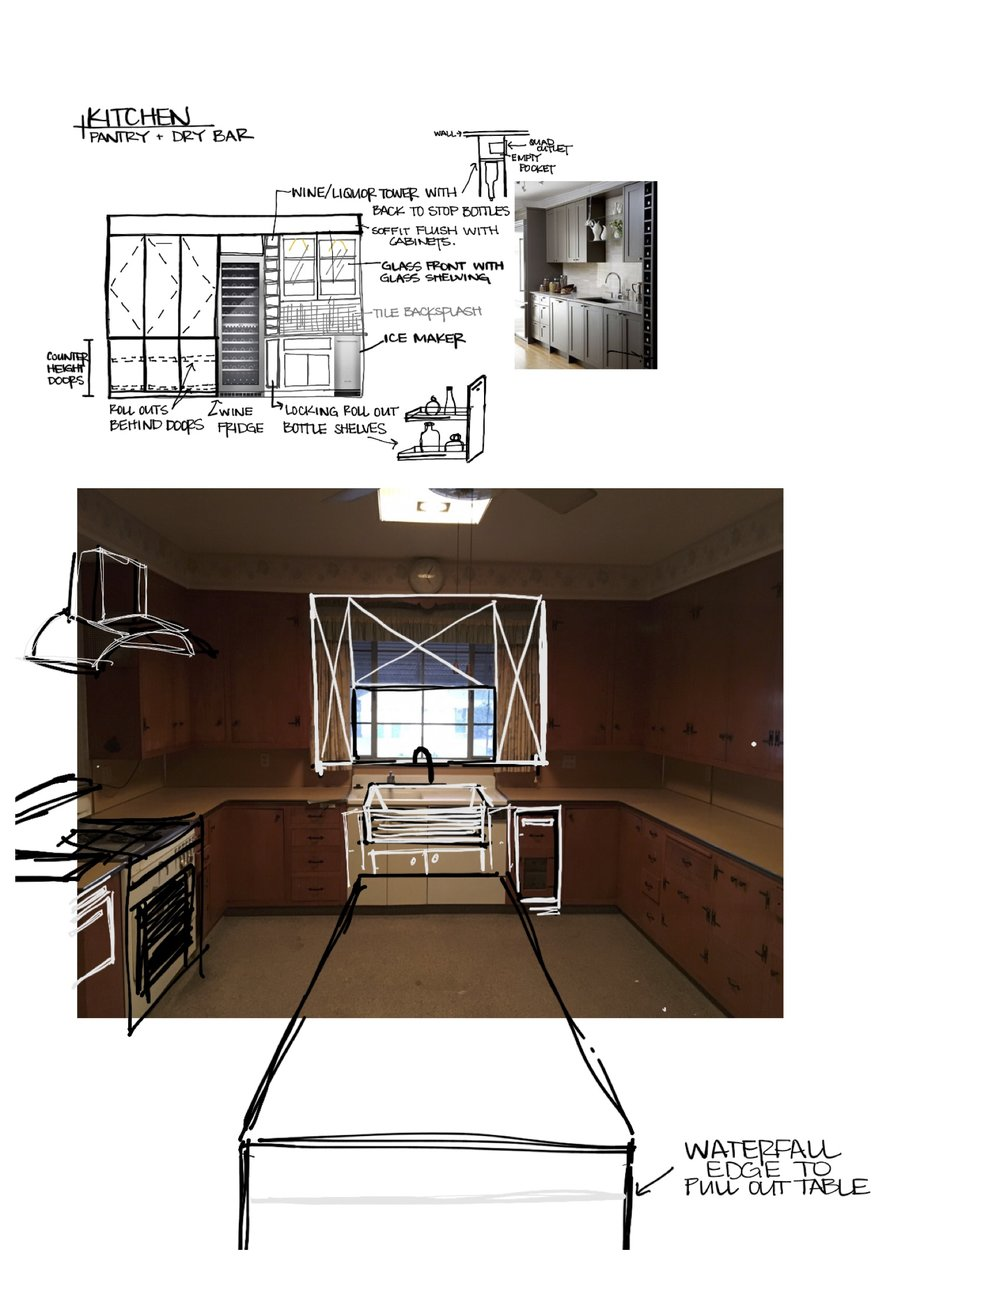 004 Carver Kitchen sketches.jpg